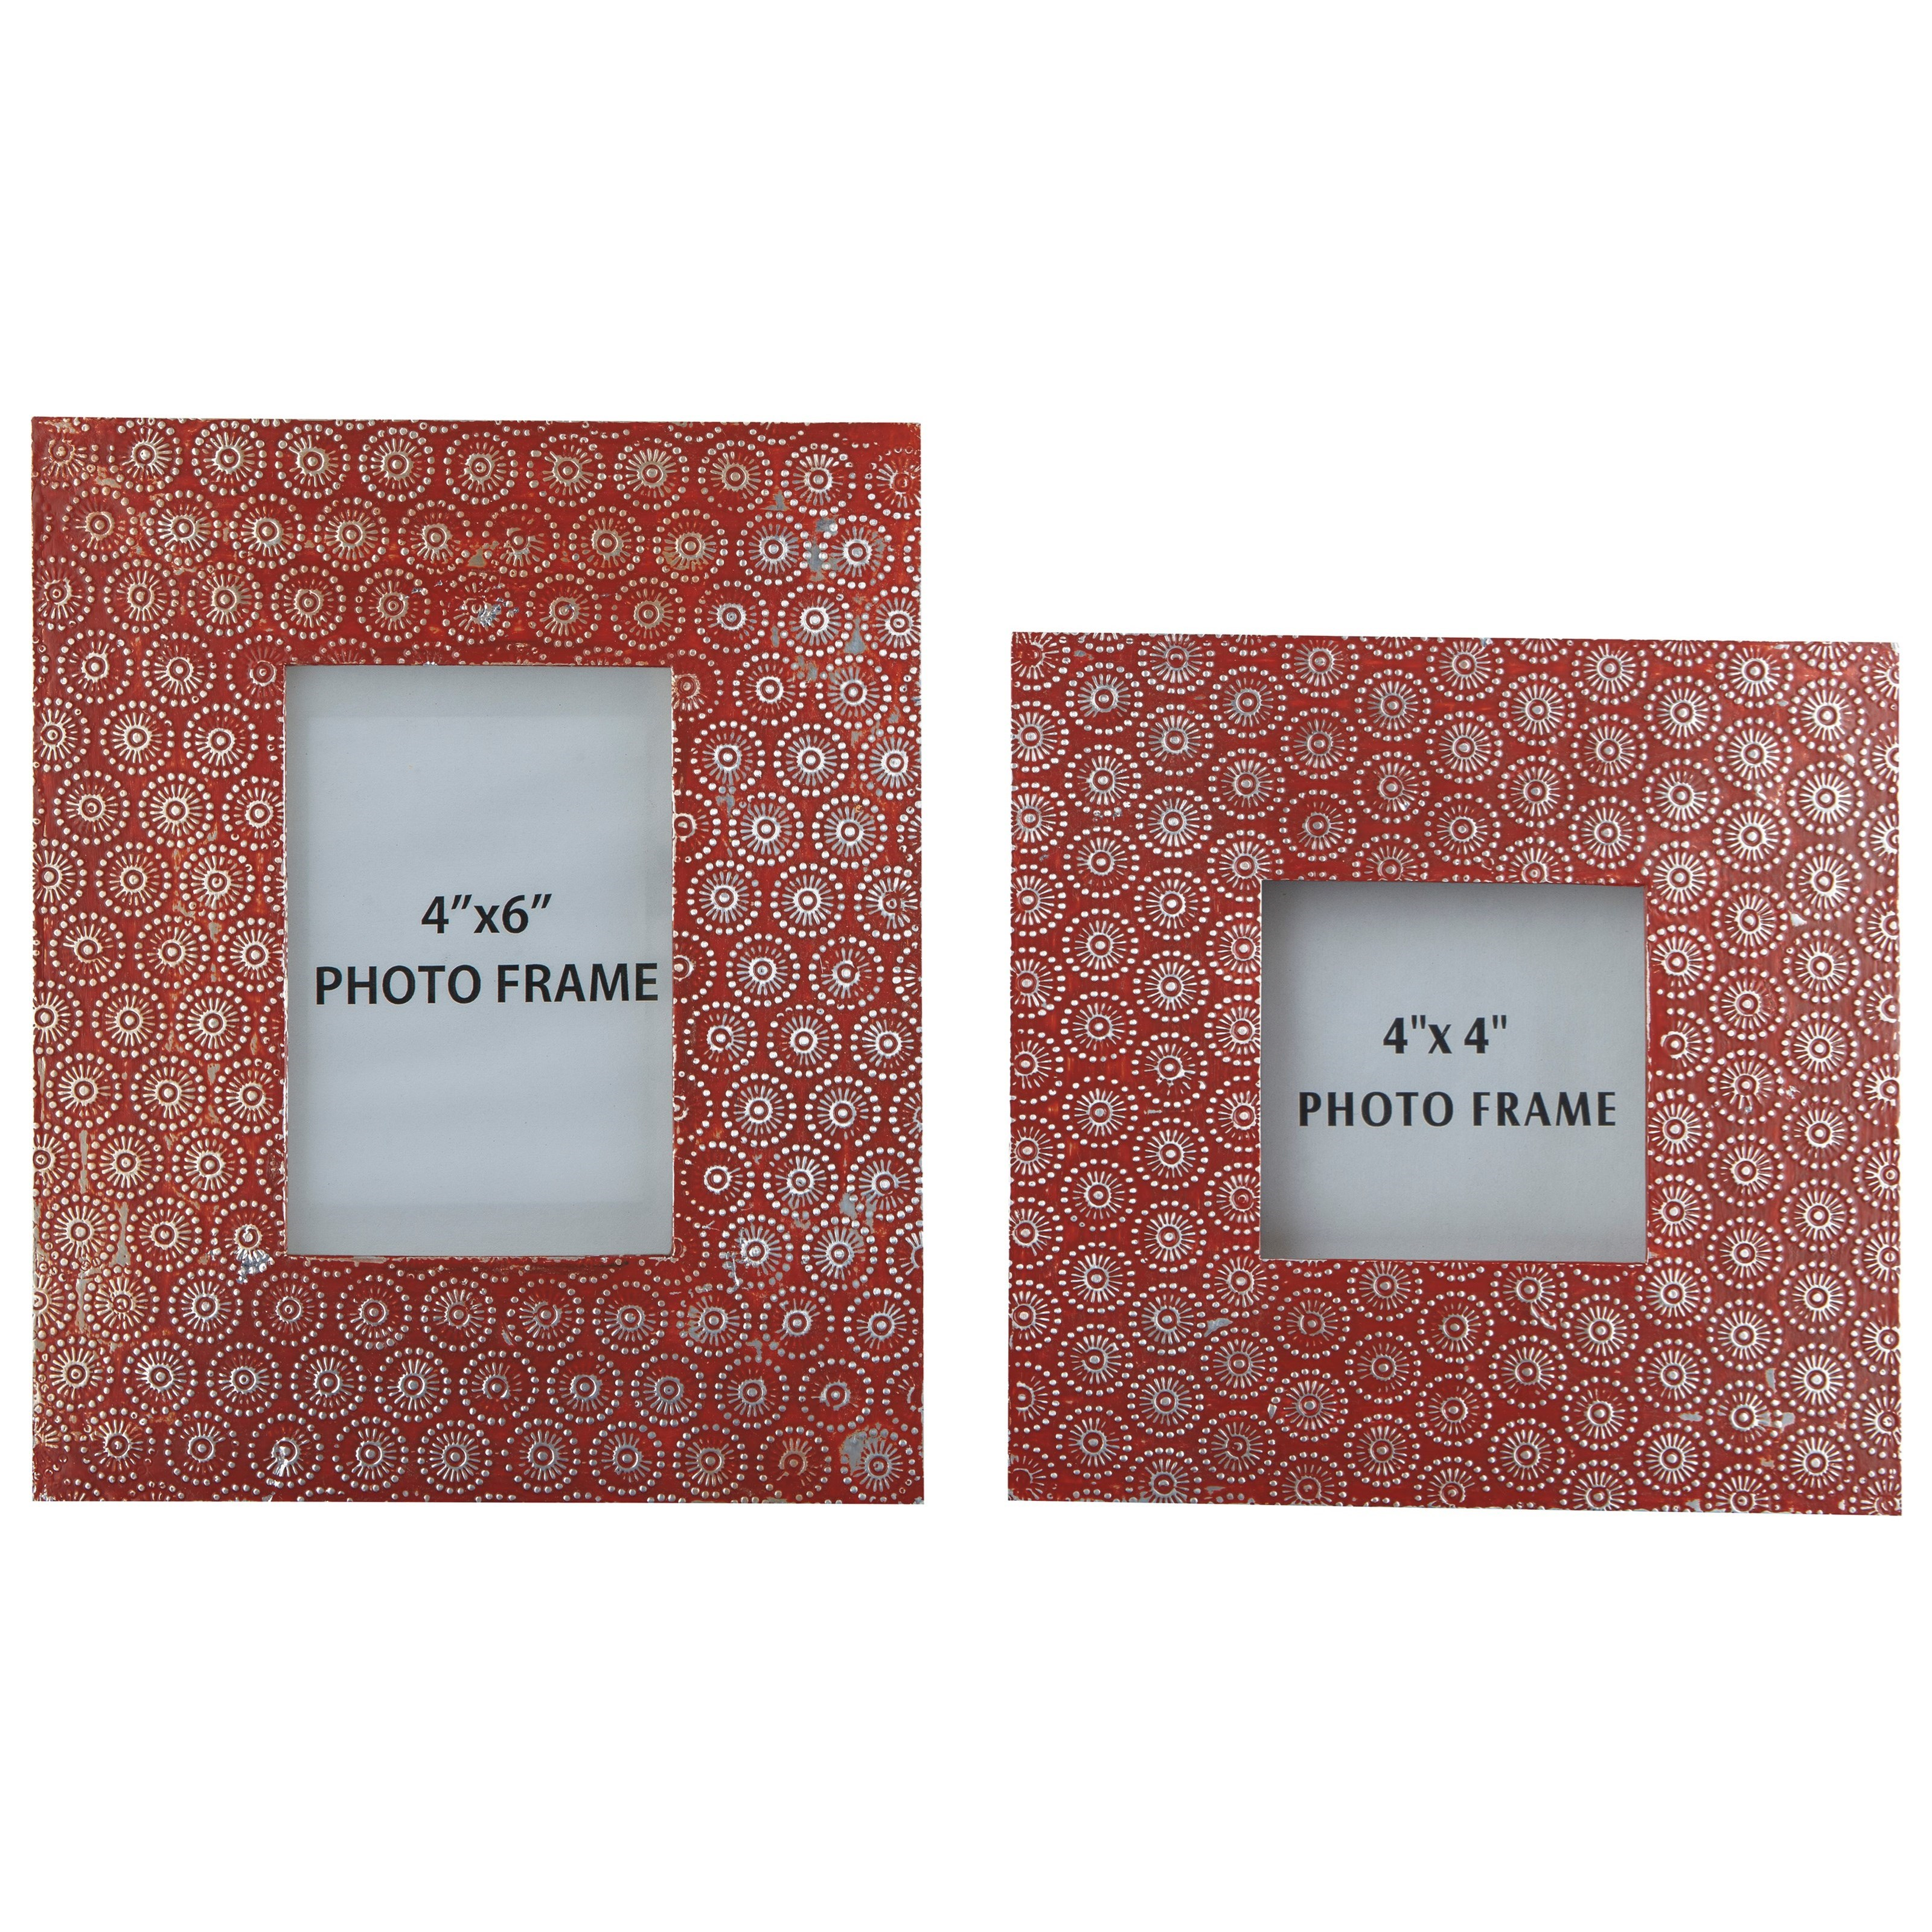 Accents Bansi - Orange Photo Frames (Set of 2) by Signature Design by Ashley at Pilgrim Furniture City